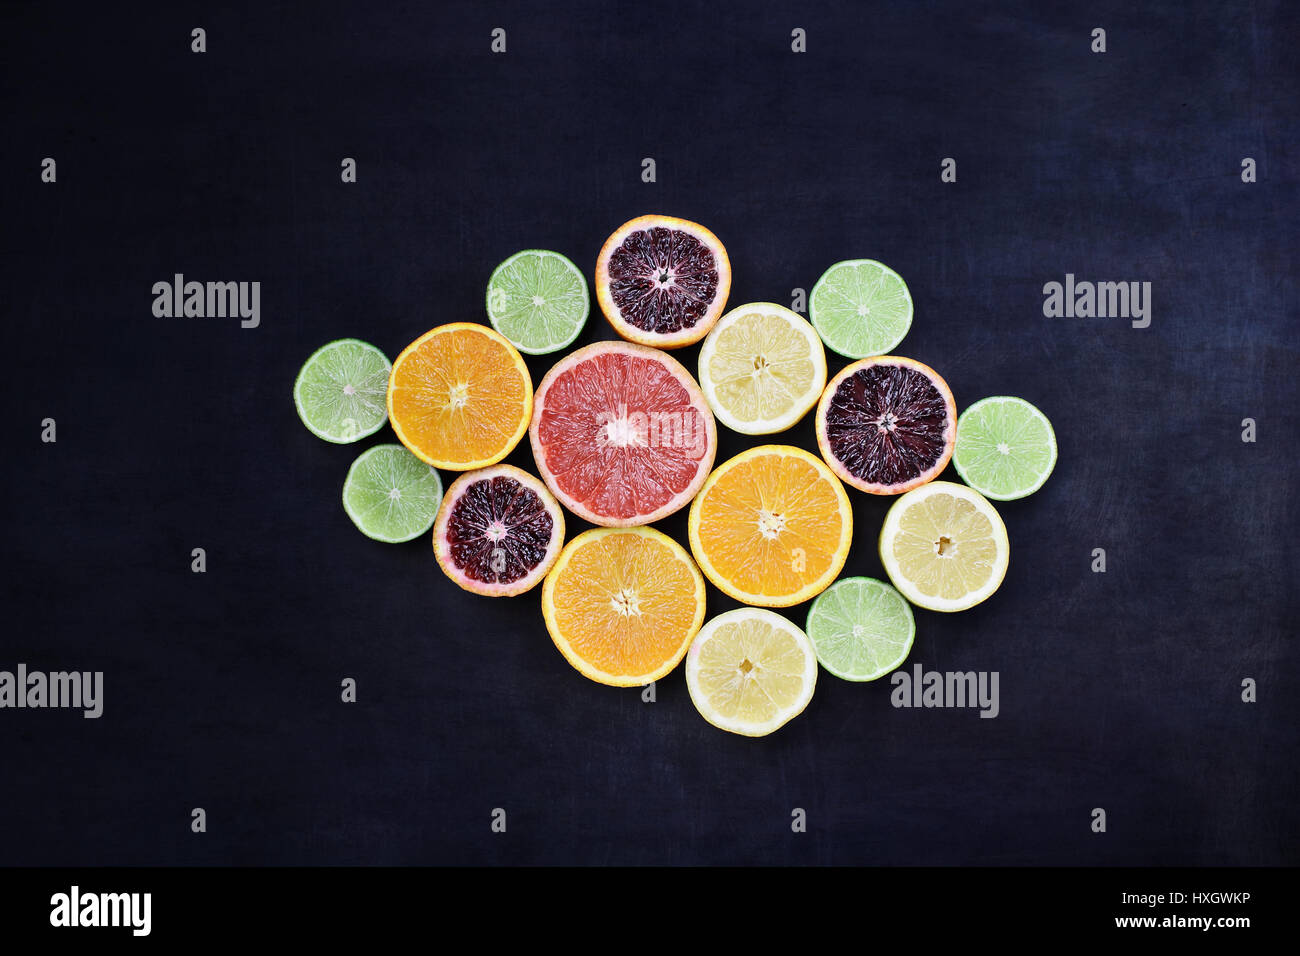 Variety of citrus fruits (orange, blood oranges, lemons, grapefruits, and limes) over a black rustic background. Stock Photo